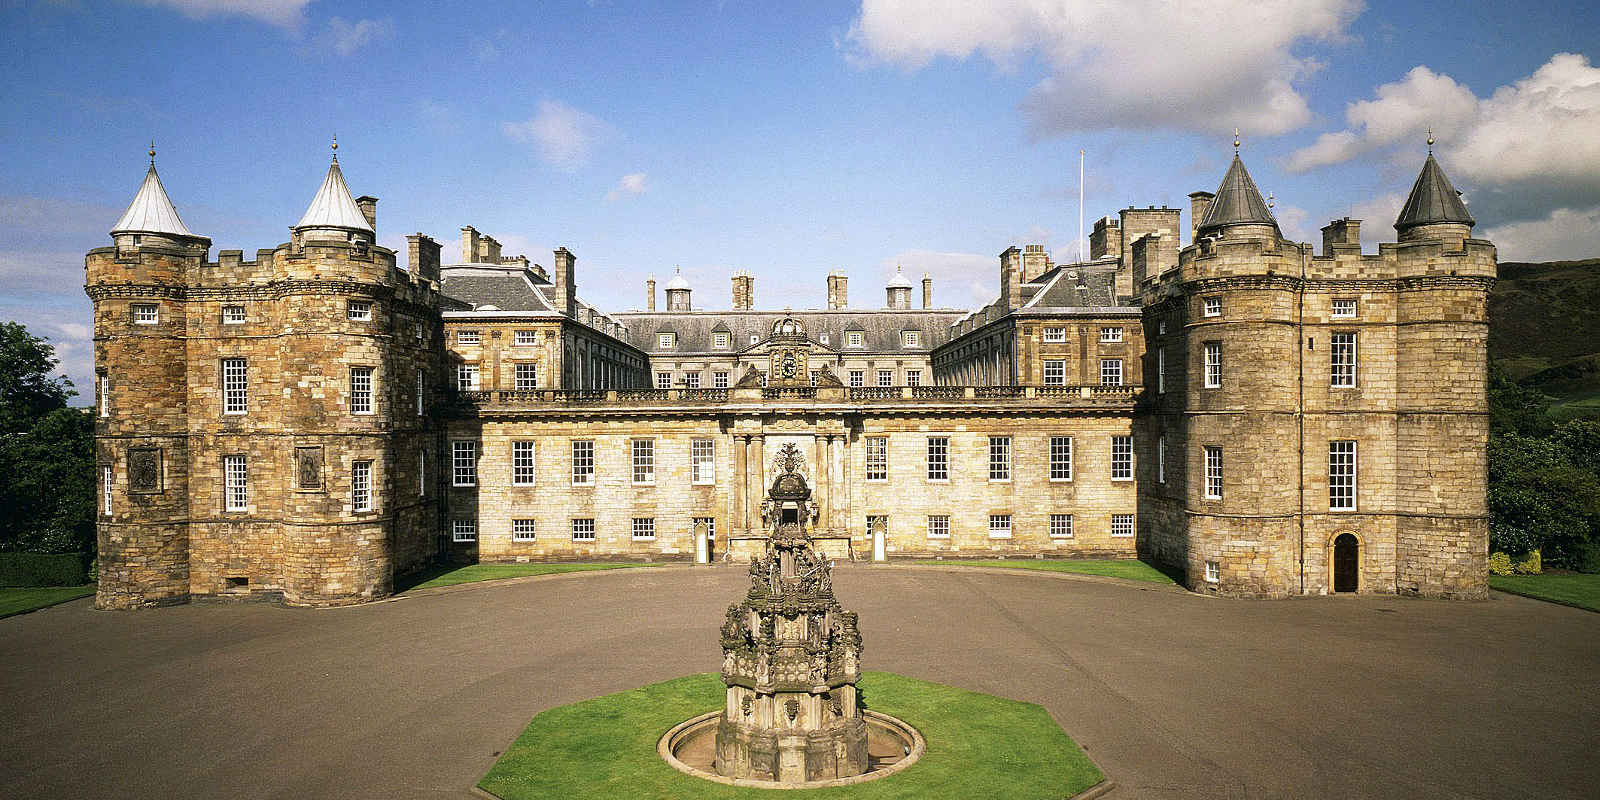 Exterior shot of Palace of Holyroodhouse in Edinburgh